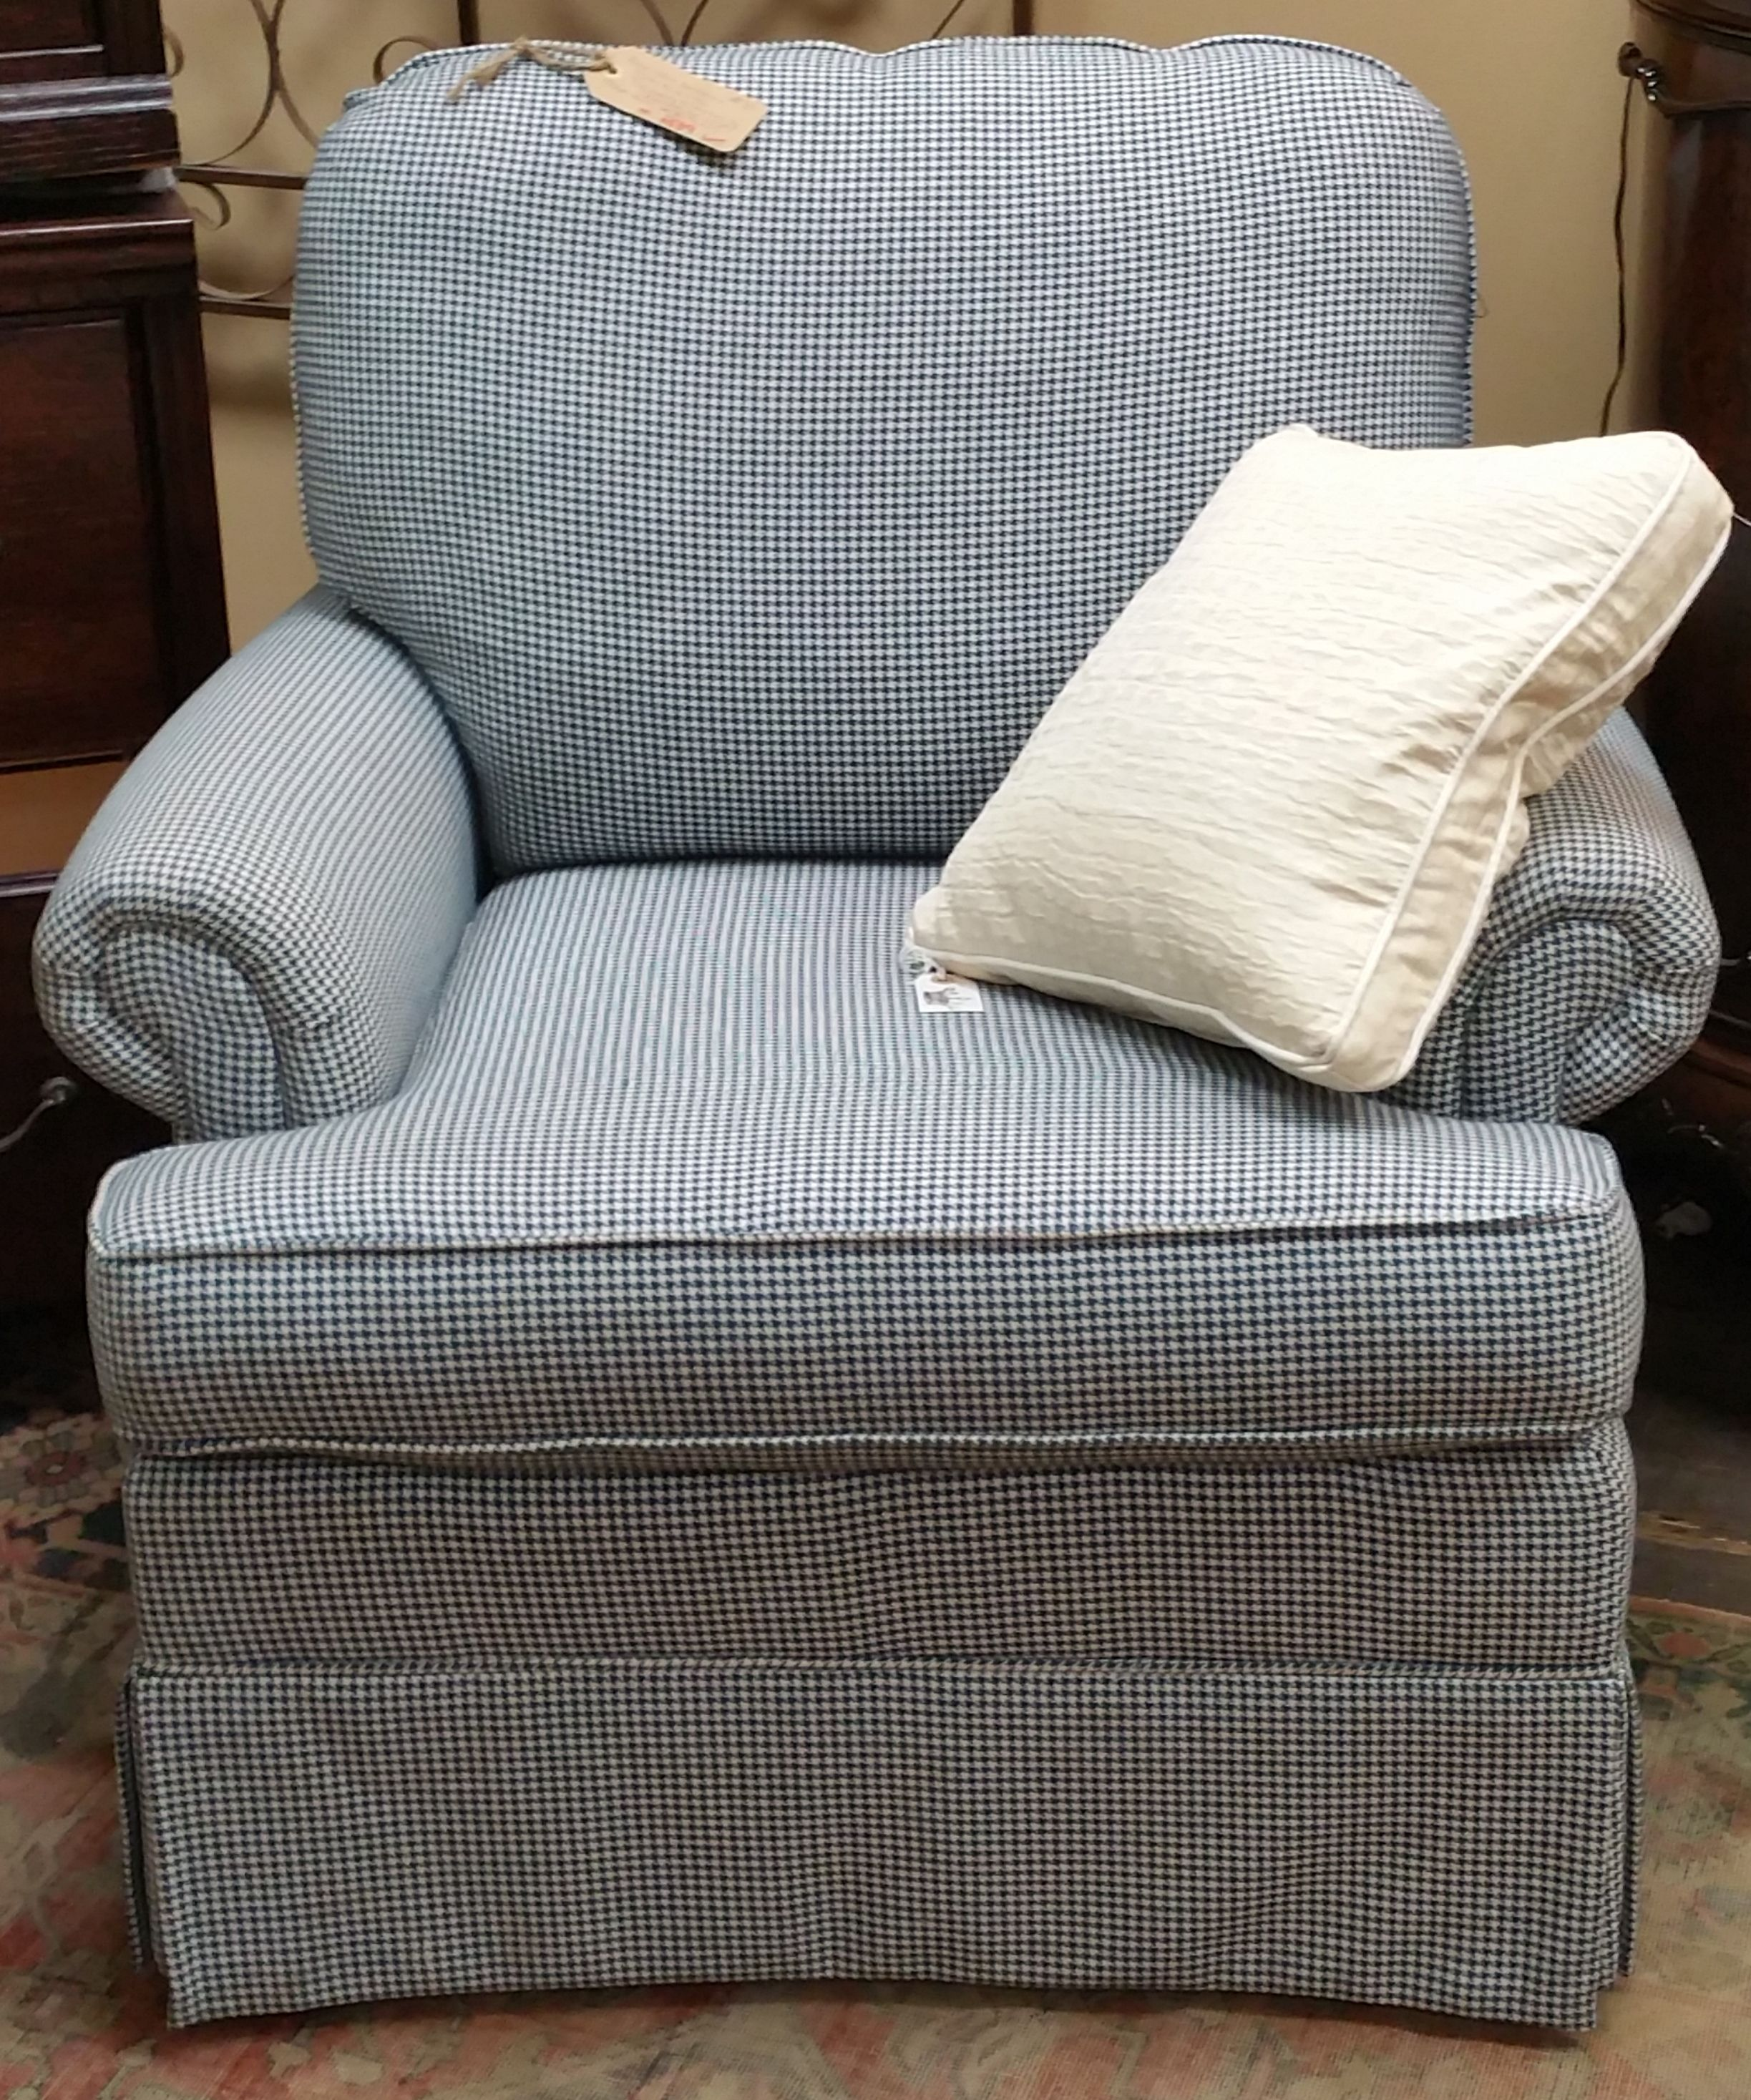 Blue and White Herringbone Club Chair, Top Quality Construction by Craft Master, $539.00,  Both 30.